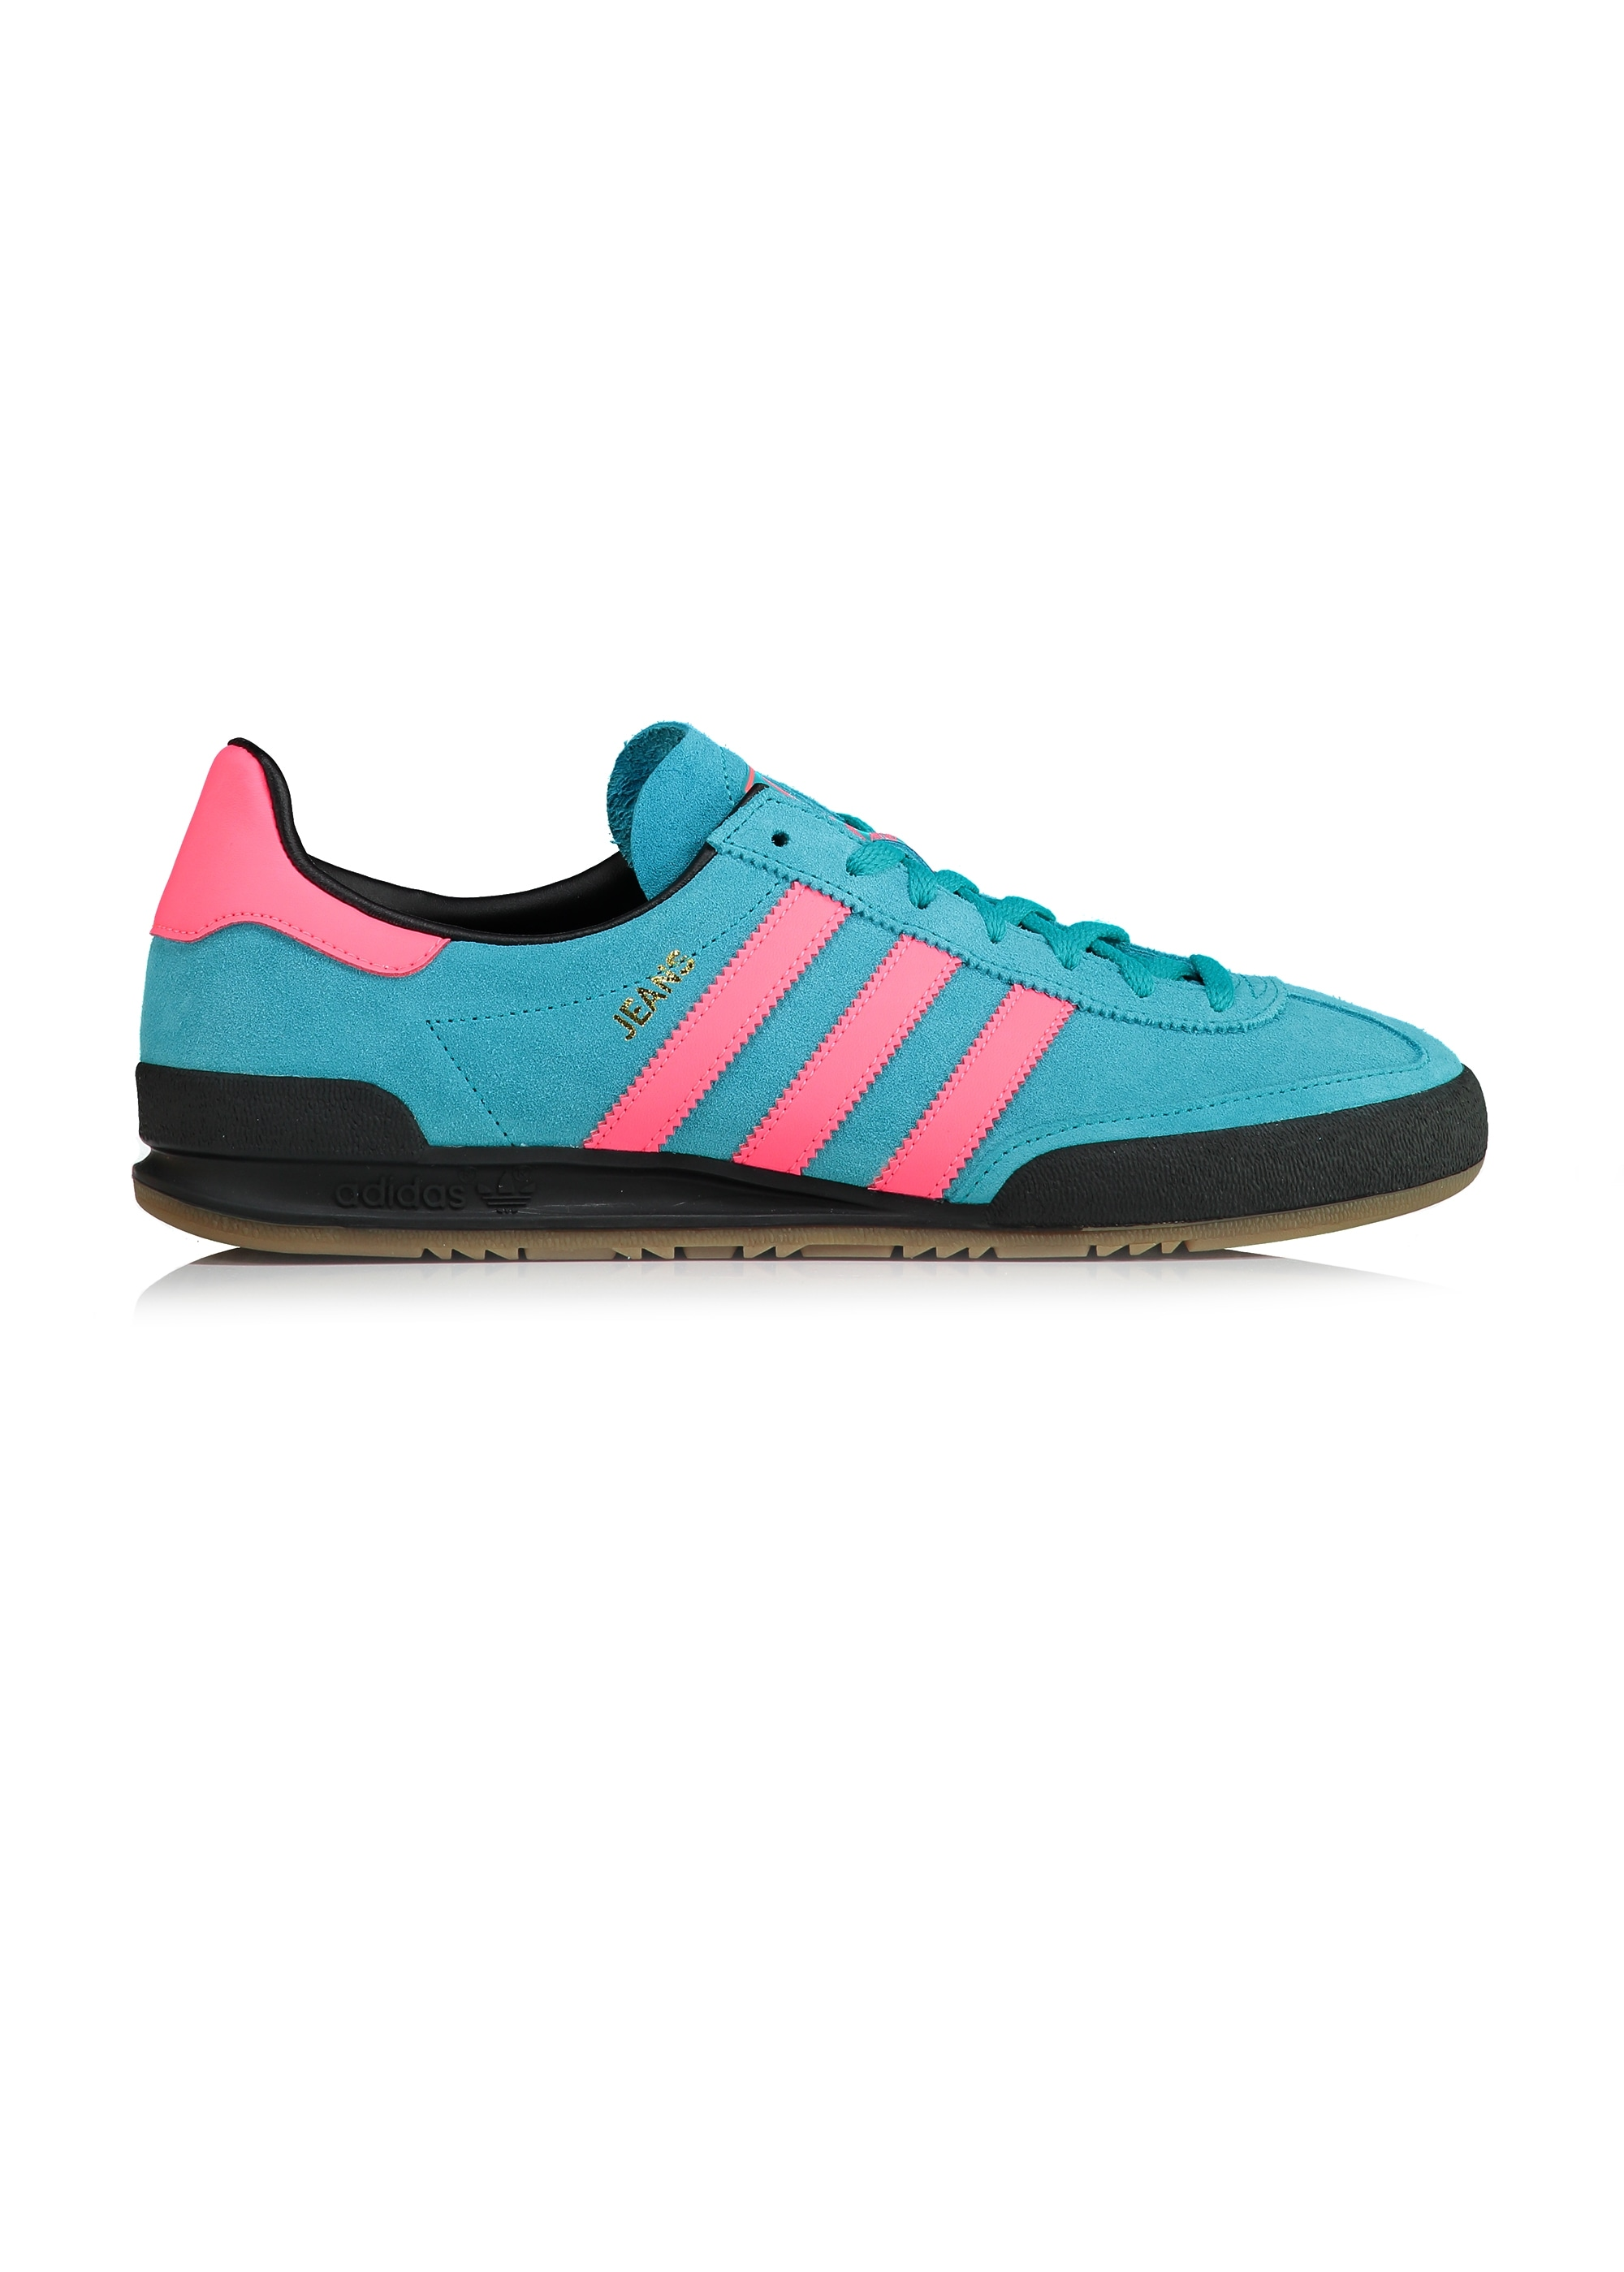 adidas Originals Footwear Adidas Originals